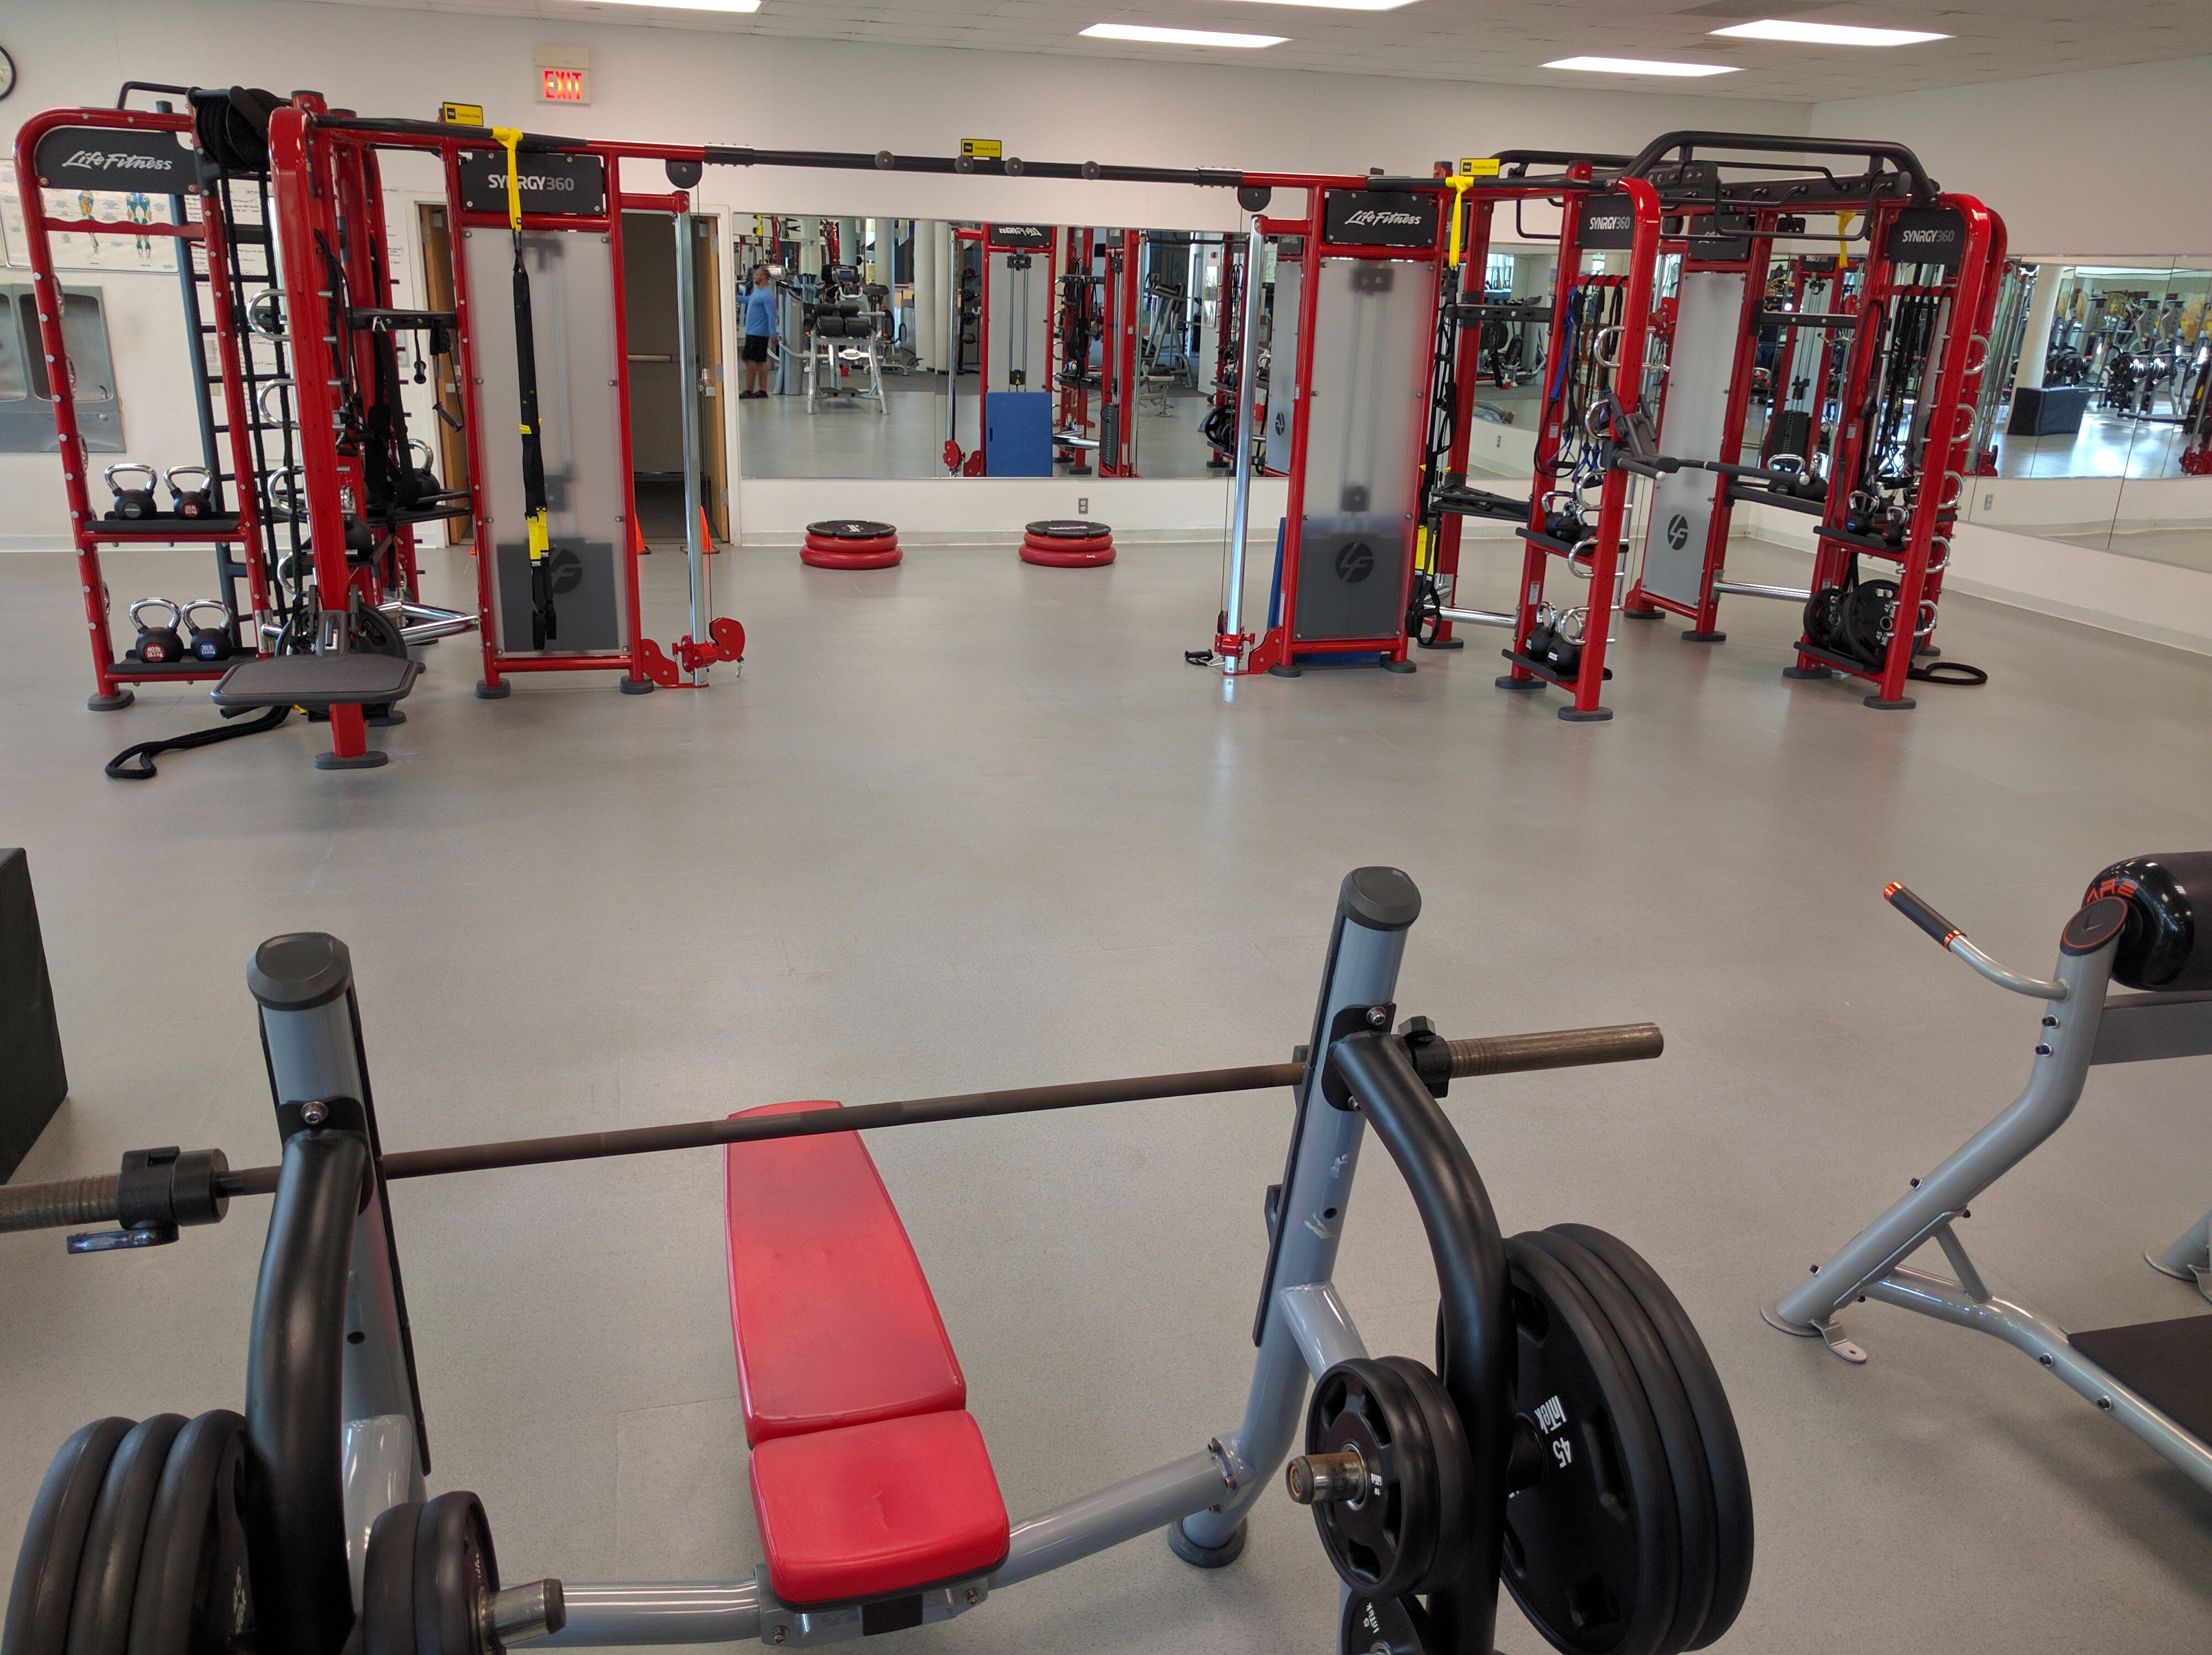 June 24th: LifeFitness Synrgy Completed